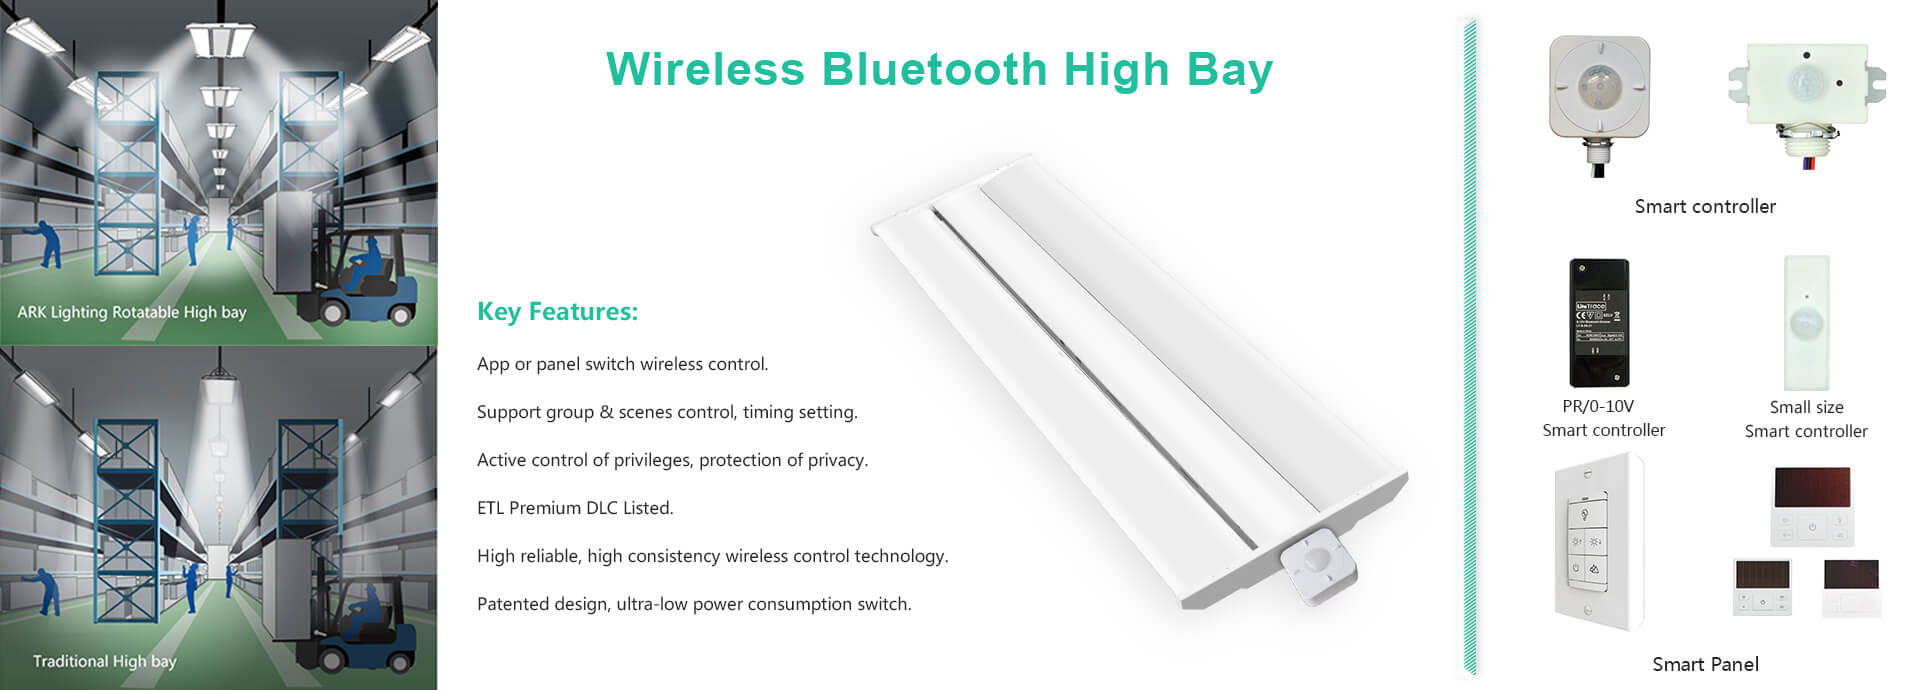 Wireless Bluetooth High Bay